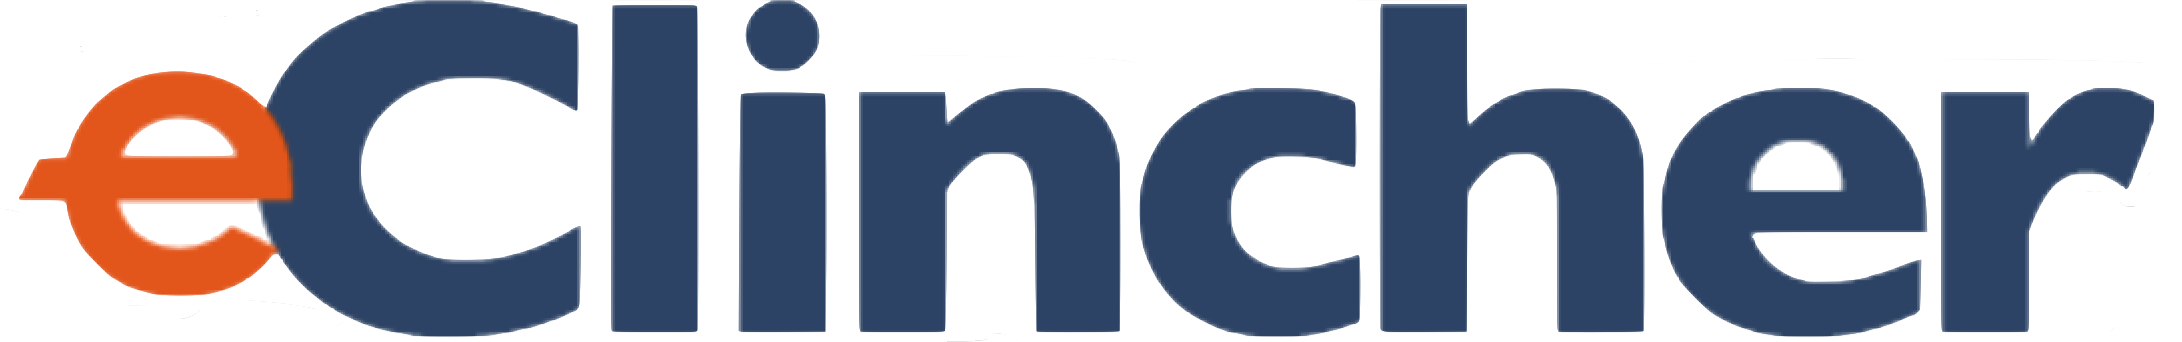 image of eClincher logo